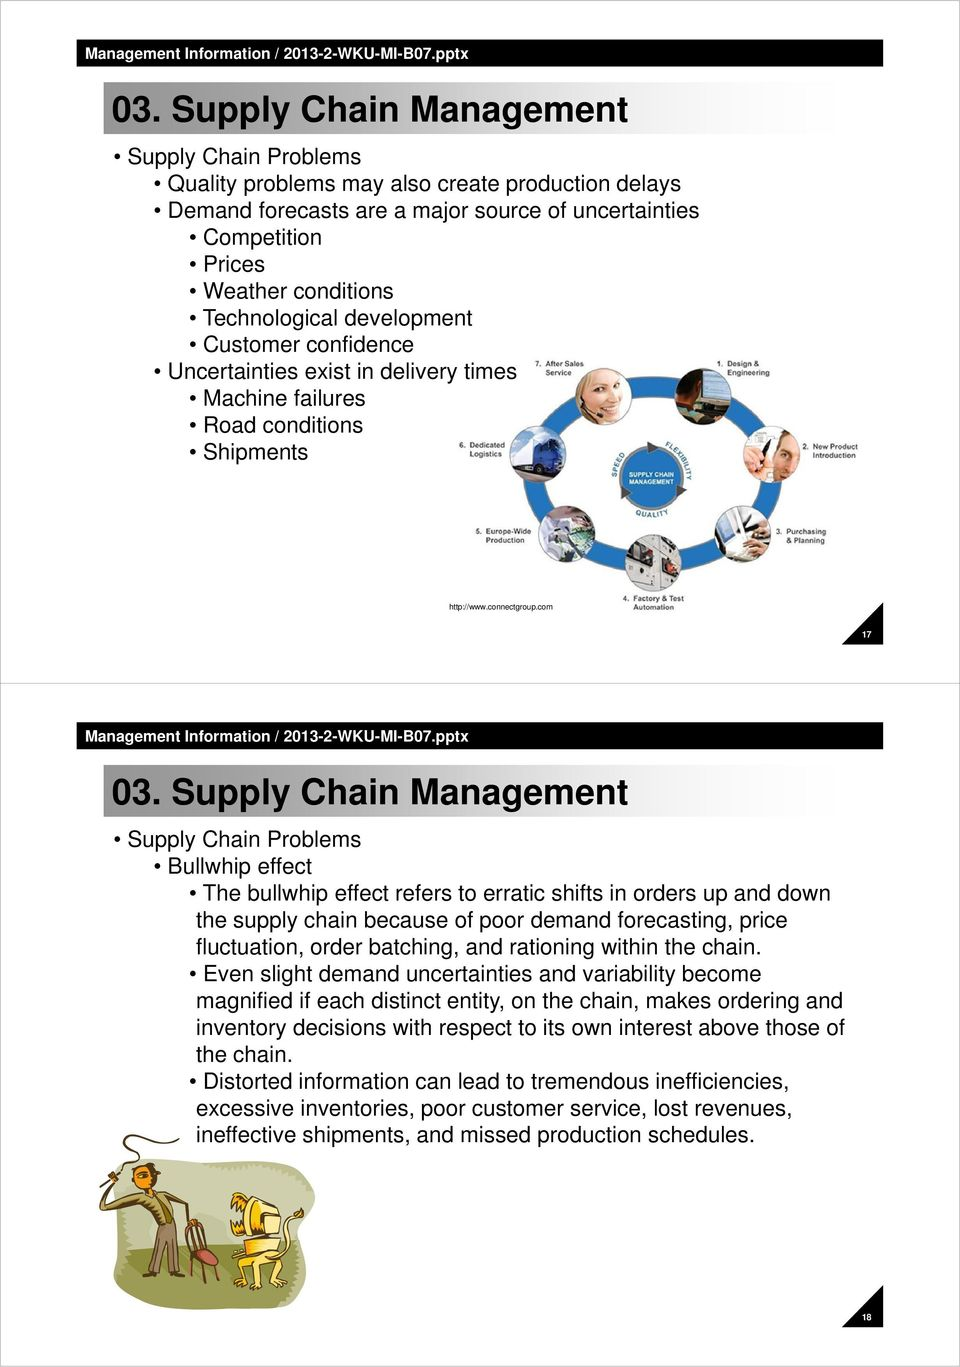 com 17 Supply Chain Problems Bullwhip effect The bullwhip effect refers to erratic shifts in orders up and down the supply chain because of poor demand forecasting, price fluctuation, order batching,